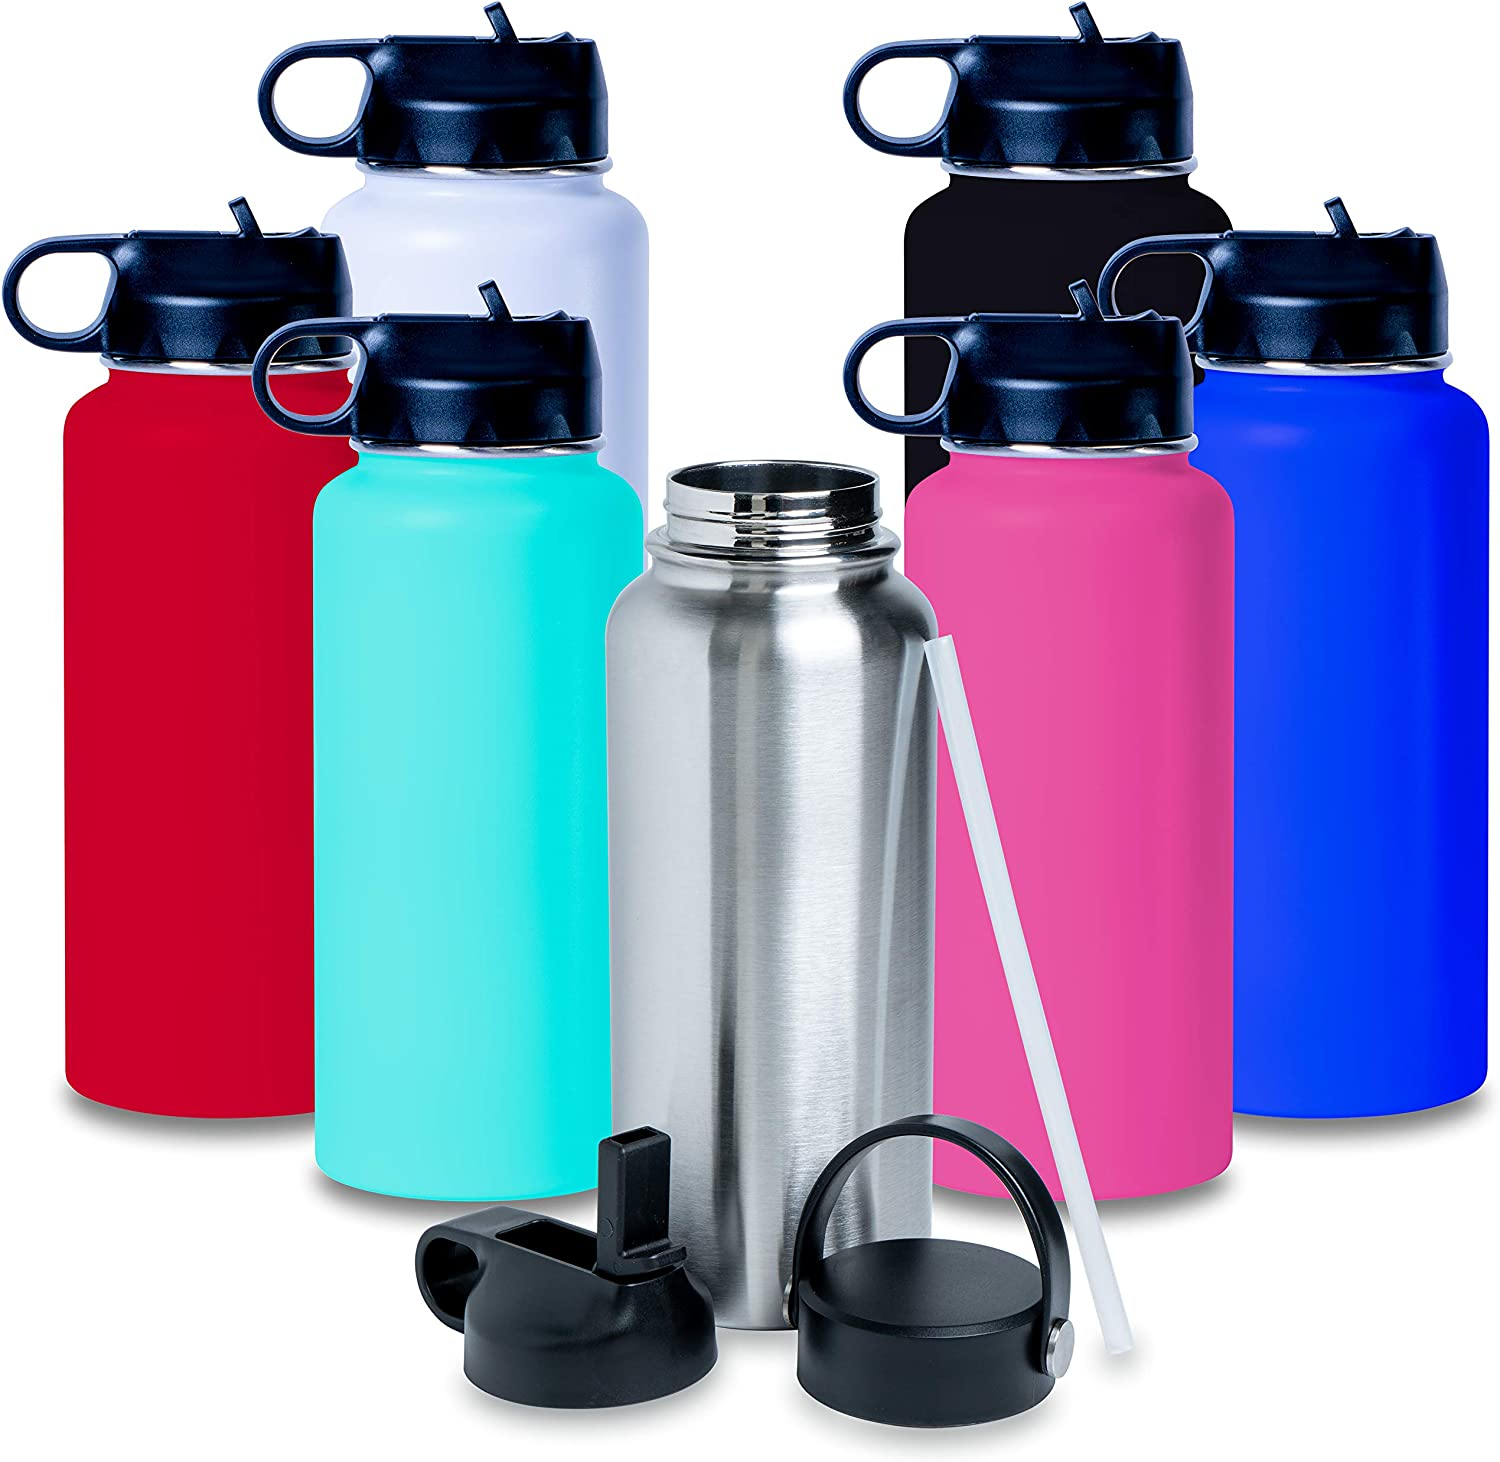 Amazon Com Bulk 32oz Hydro Bottle Vacuum Sealed Double Walled Stainless Steel Powder Coated Flask Style Bottle With 2 Lids And A Straw Able To Be Engraved And Customized Easily Black Sports Outdoors